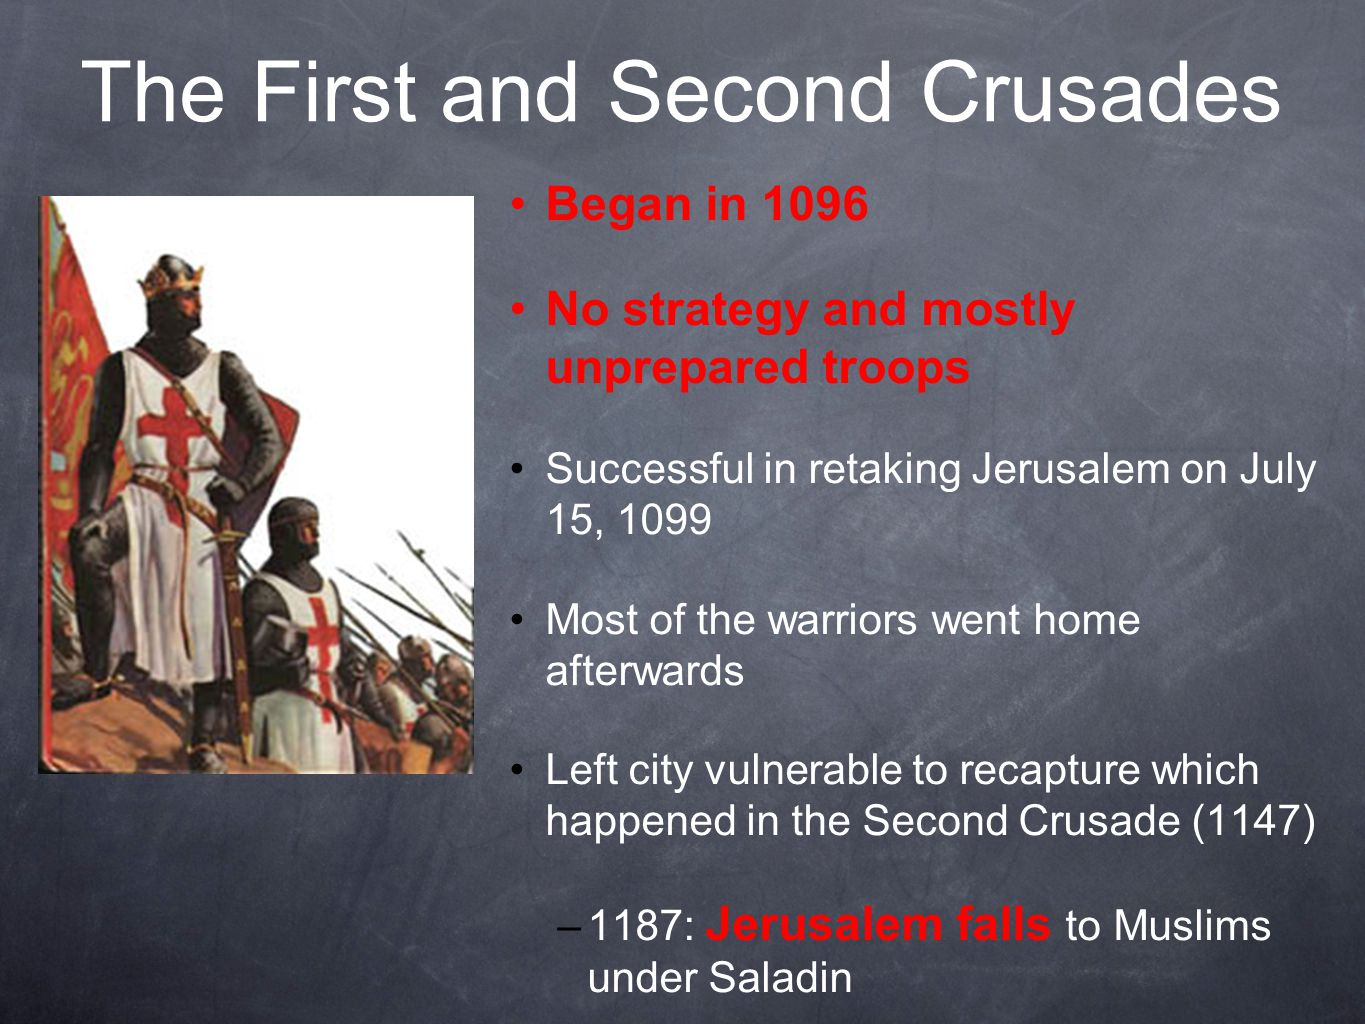 The First and Second Crusades